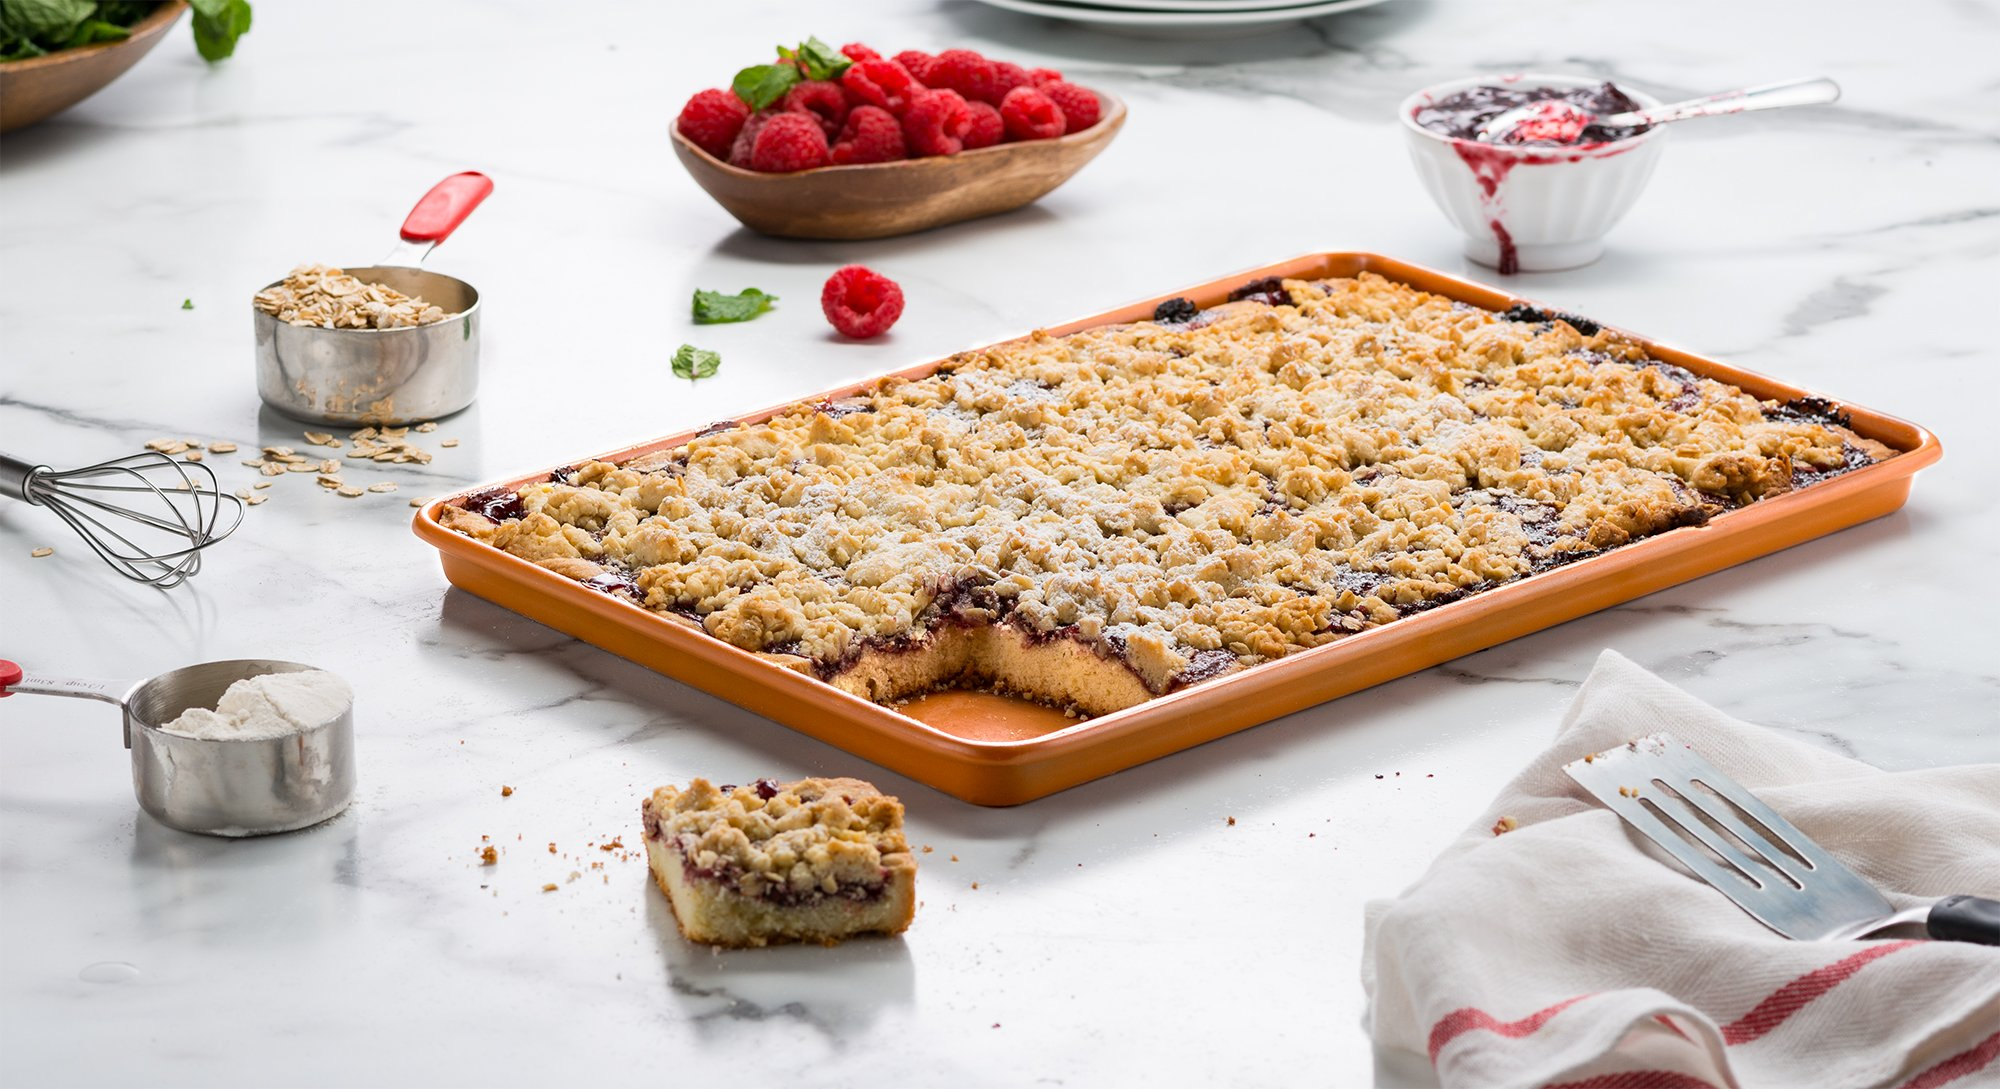 Ceramic Coated Cookie Sheet 17.3'' x 11.6'' - Premium Nonstick, Even Baking, Dishwasher and Oven Safe - PTFE/PFOA Free - Red Cookware and Bakeware by Bovado USA by BOVADO USA (Image #5)